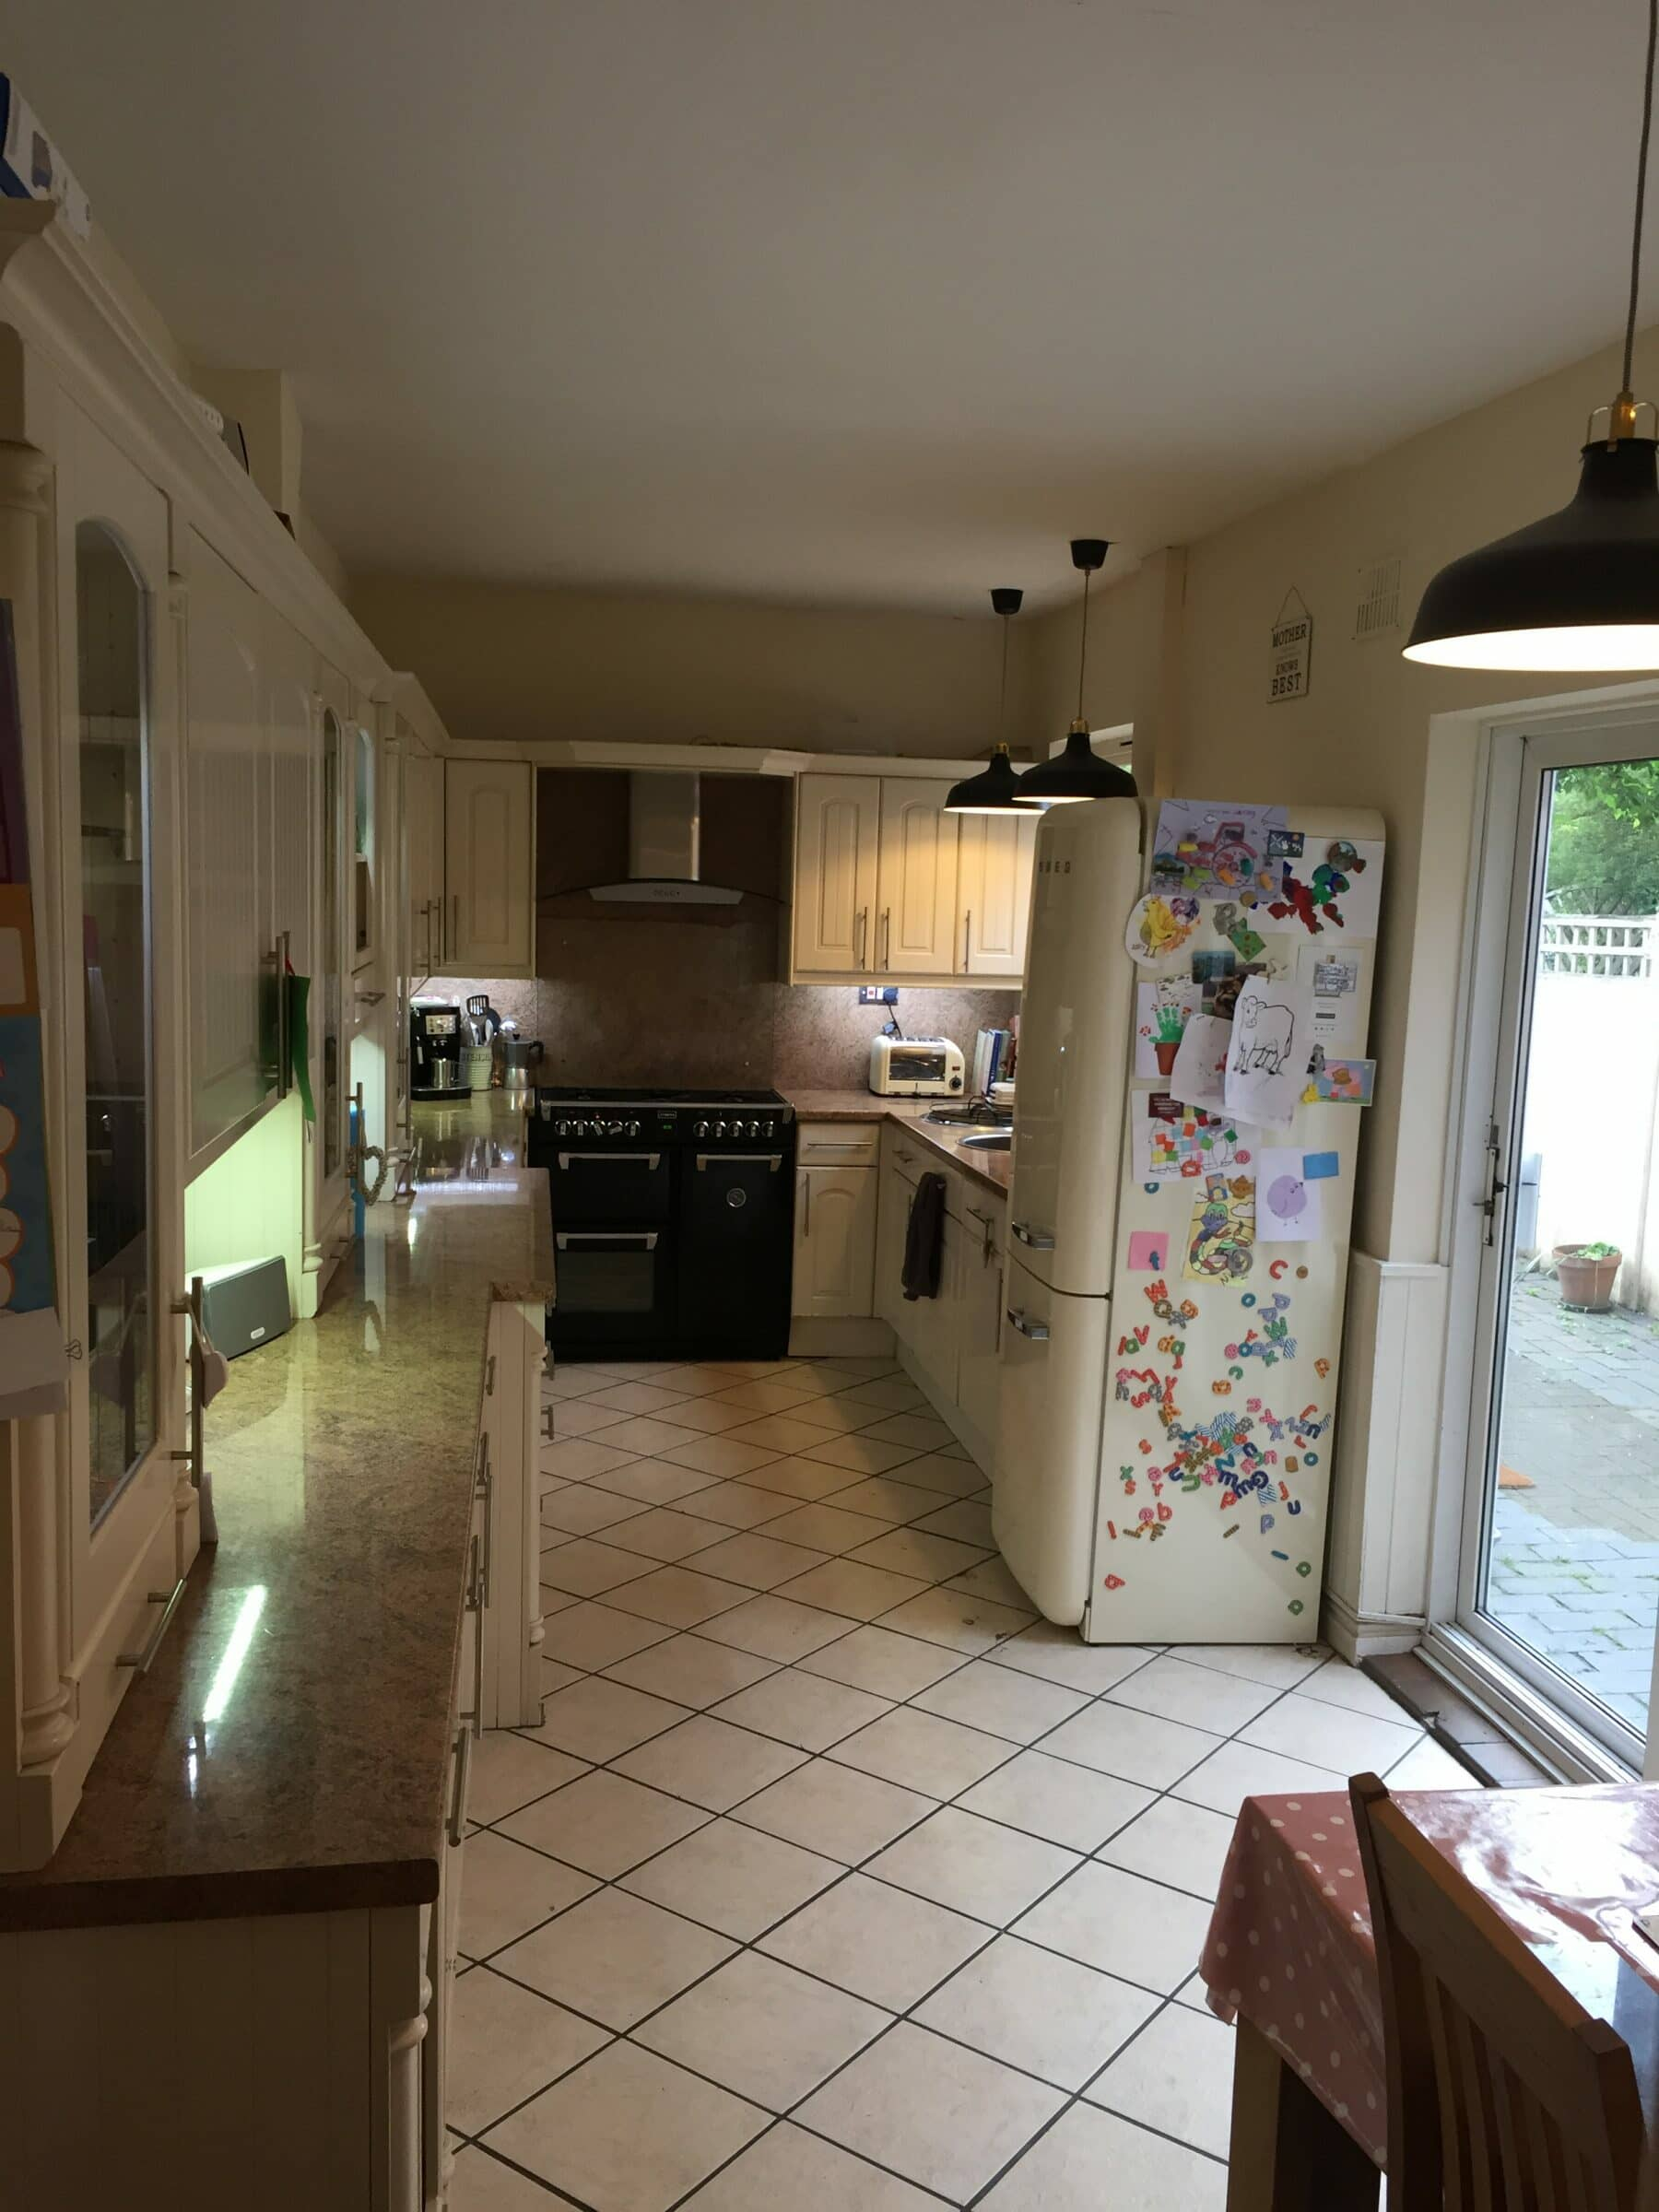 Rachael's kitchen before the renovation